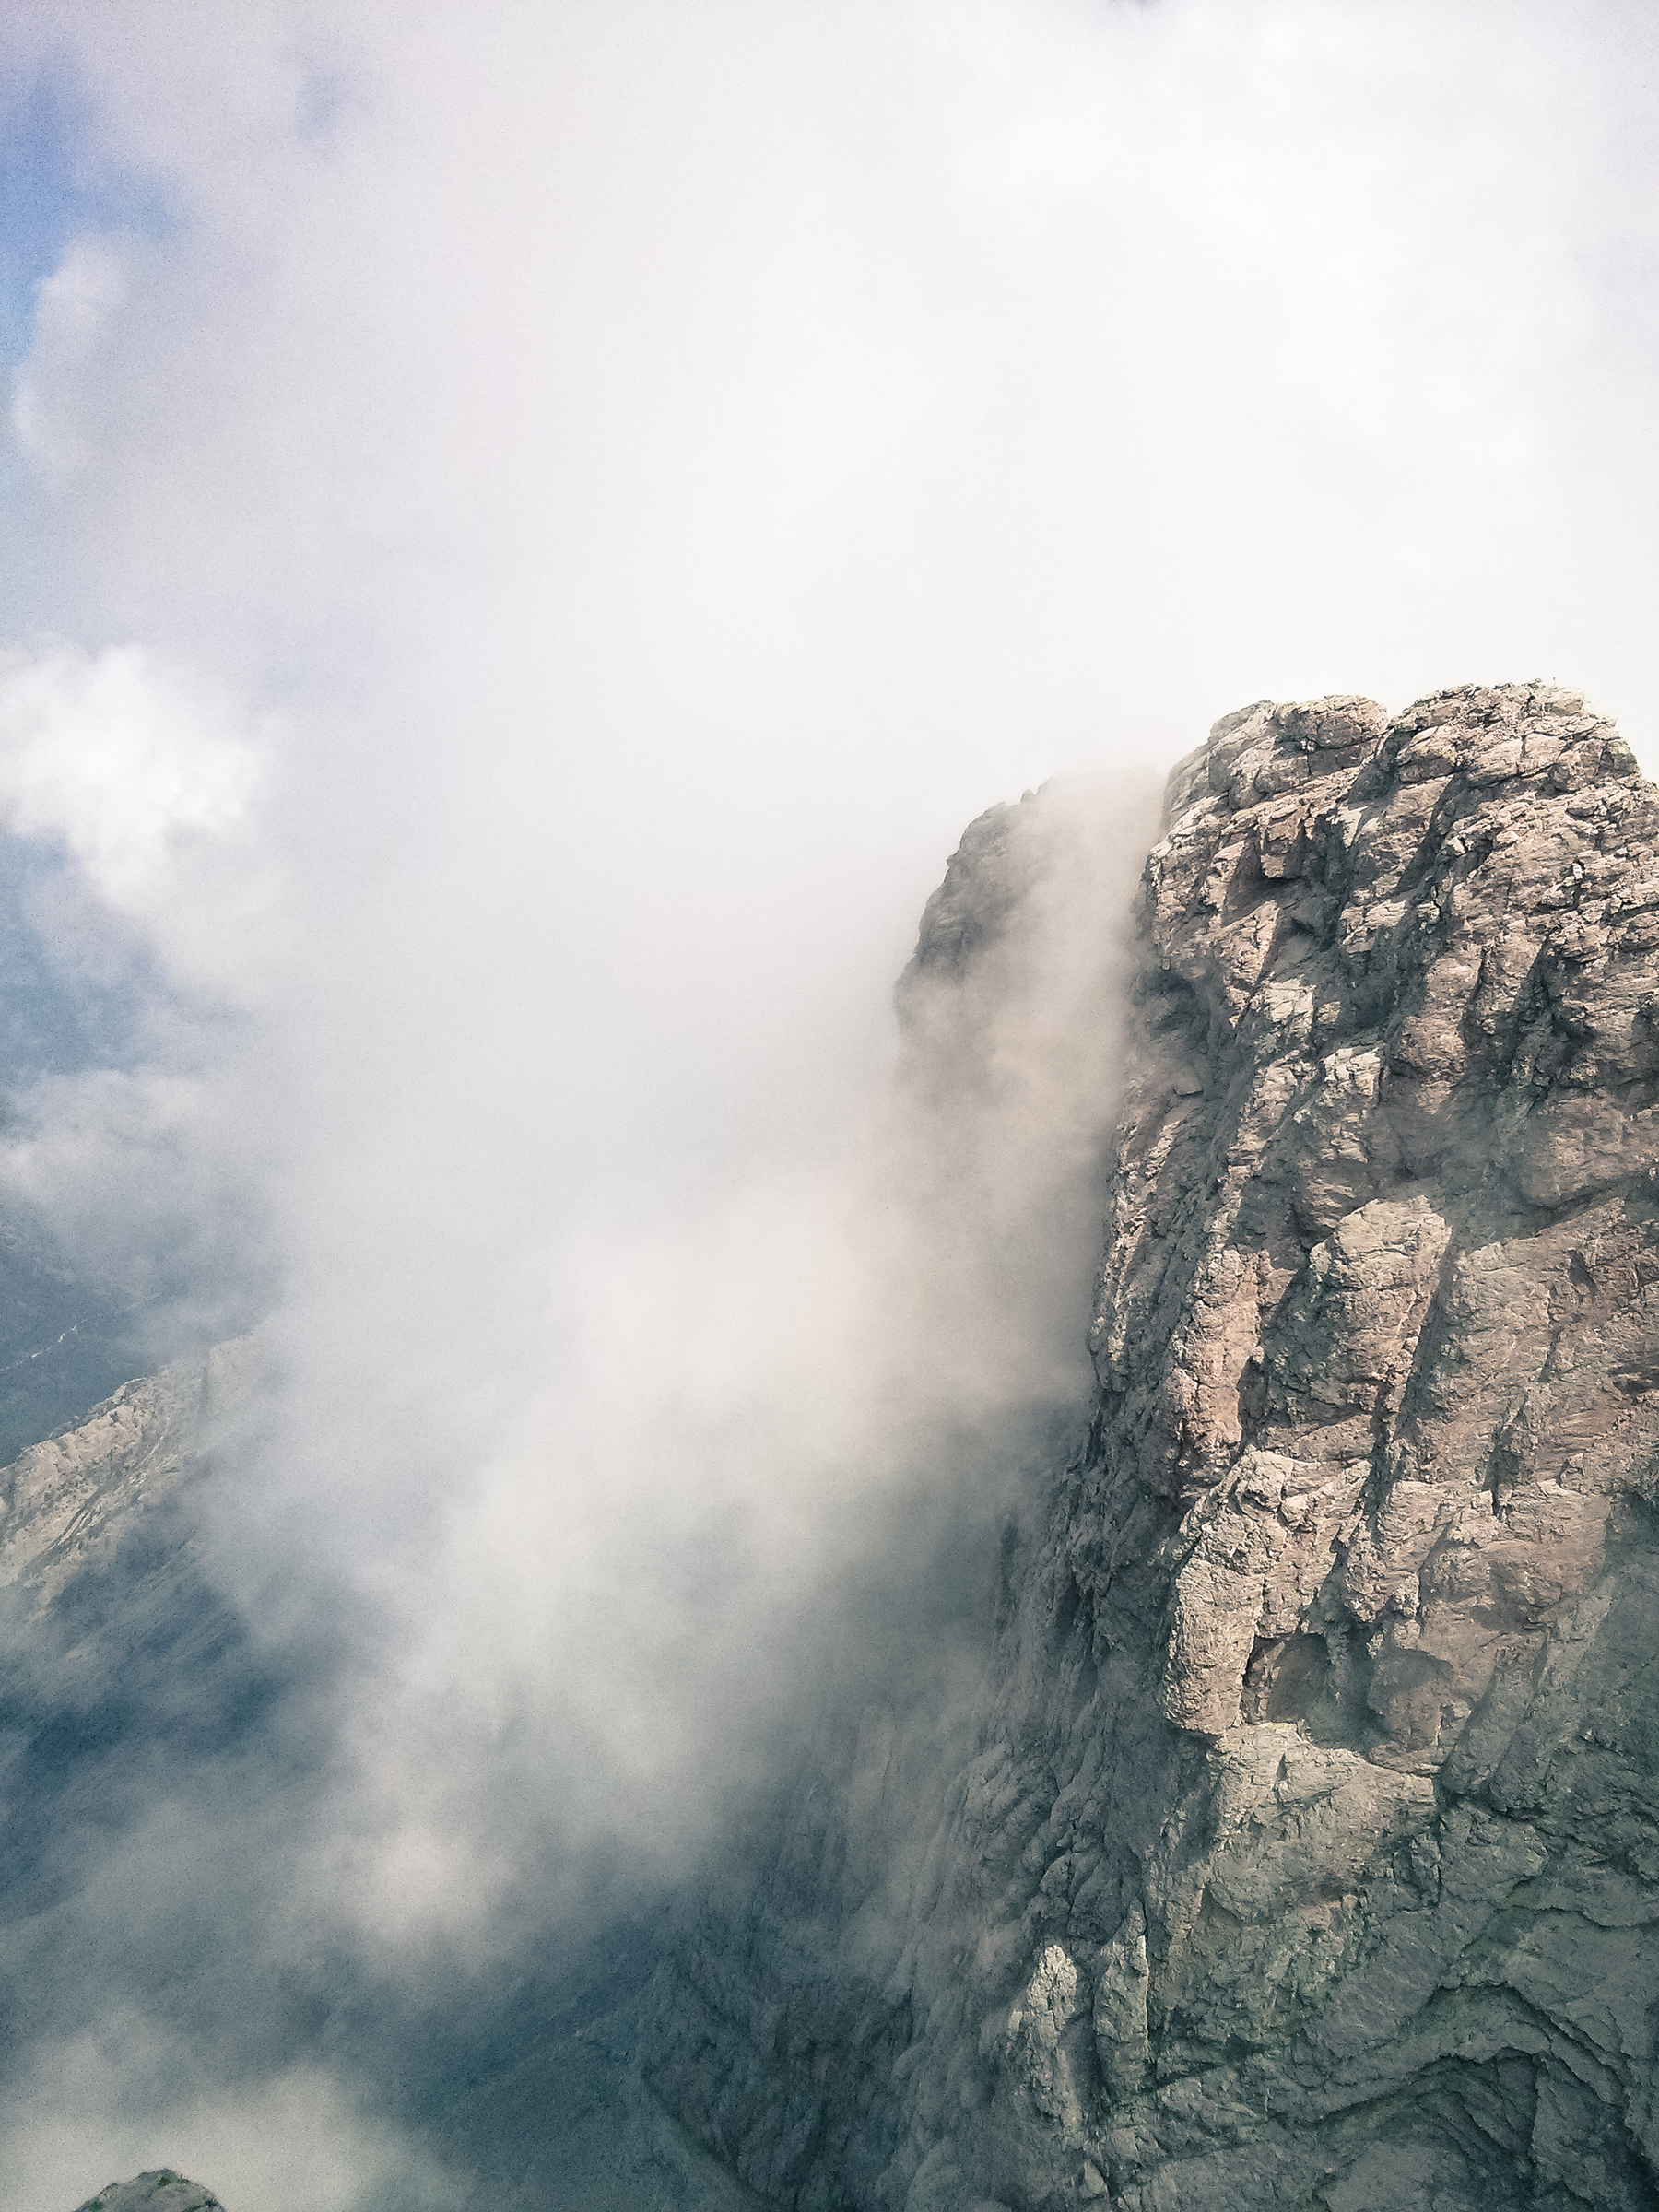 Clouds towering in the mountains 52251